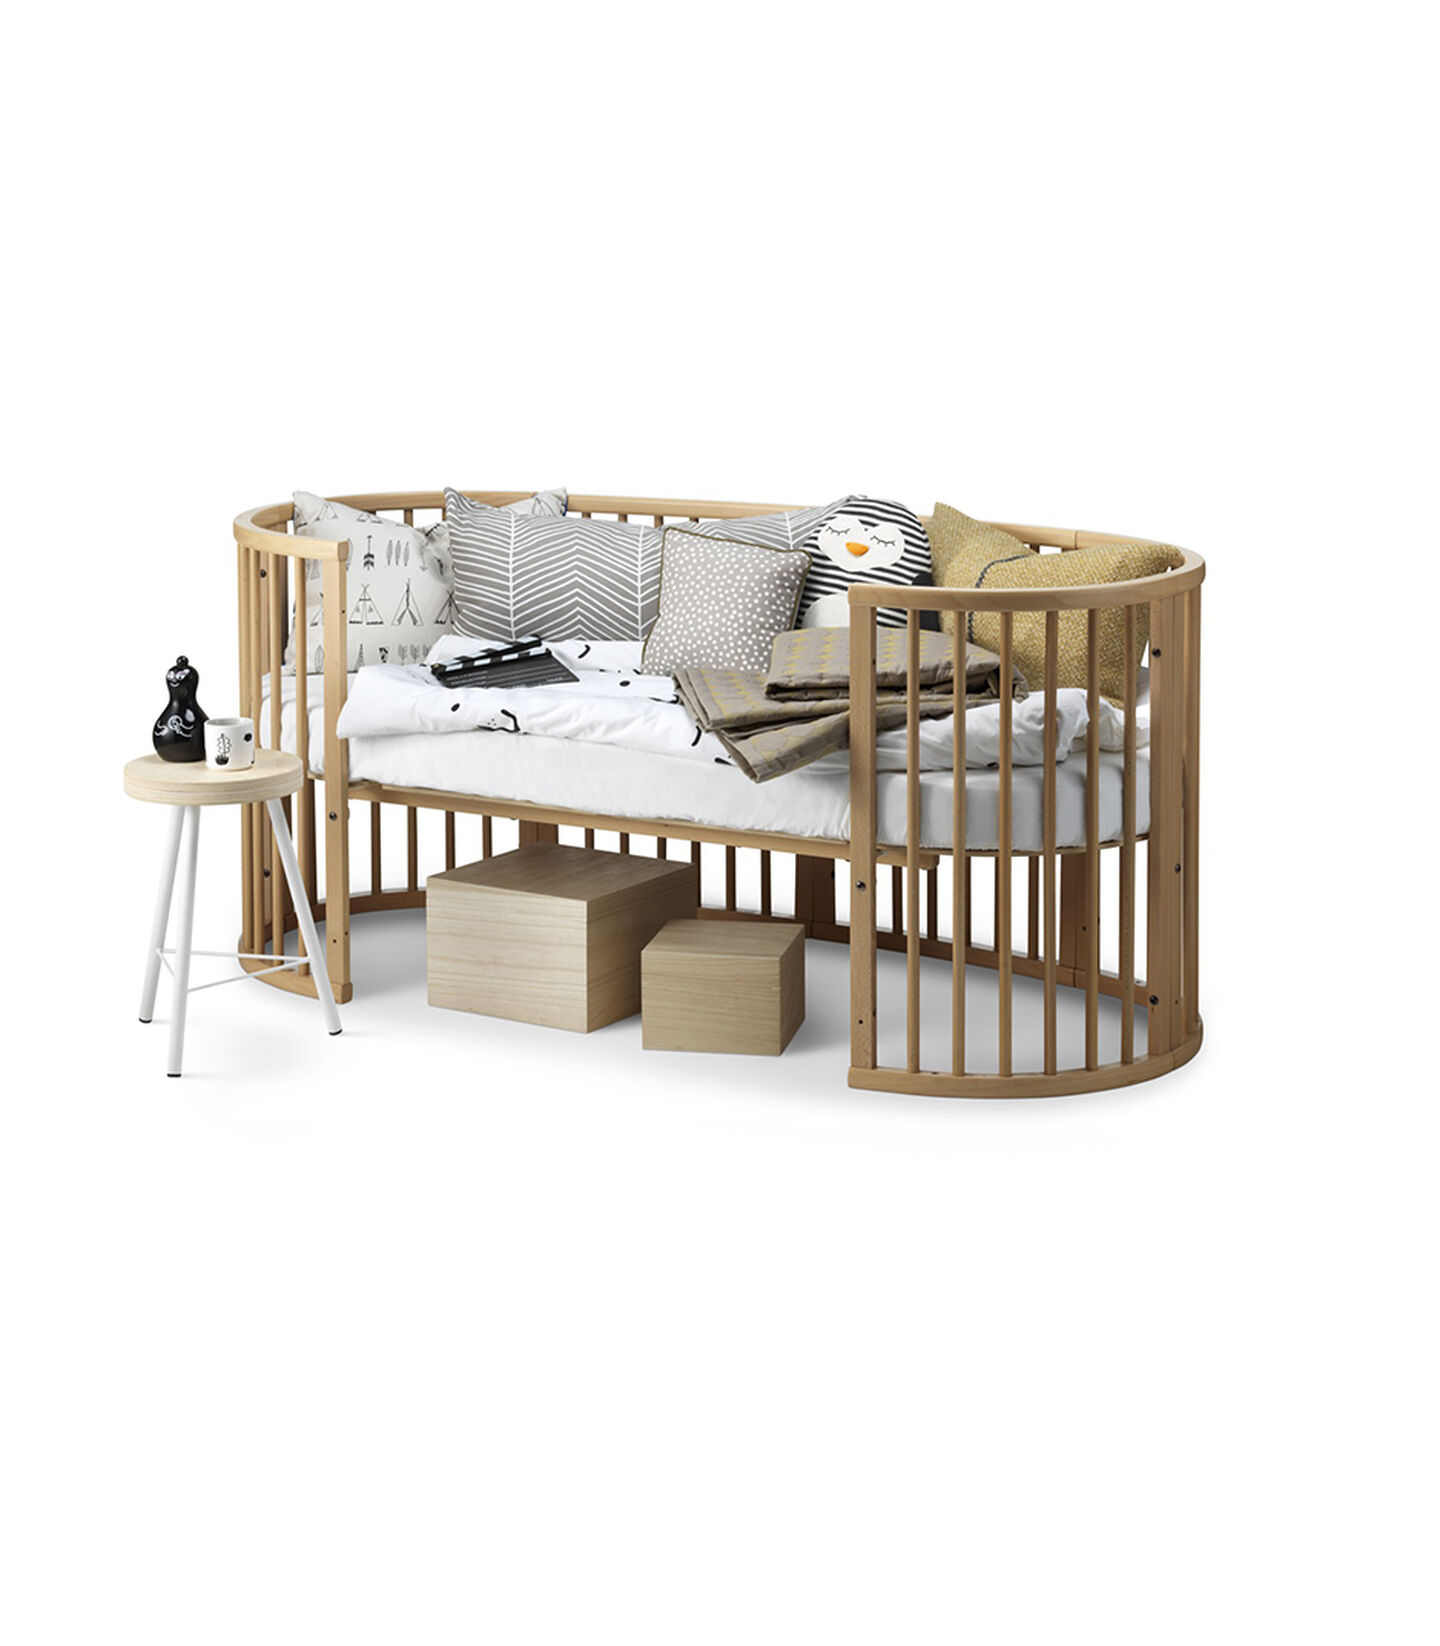 Stokke 174 Sleepi Bed Natural